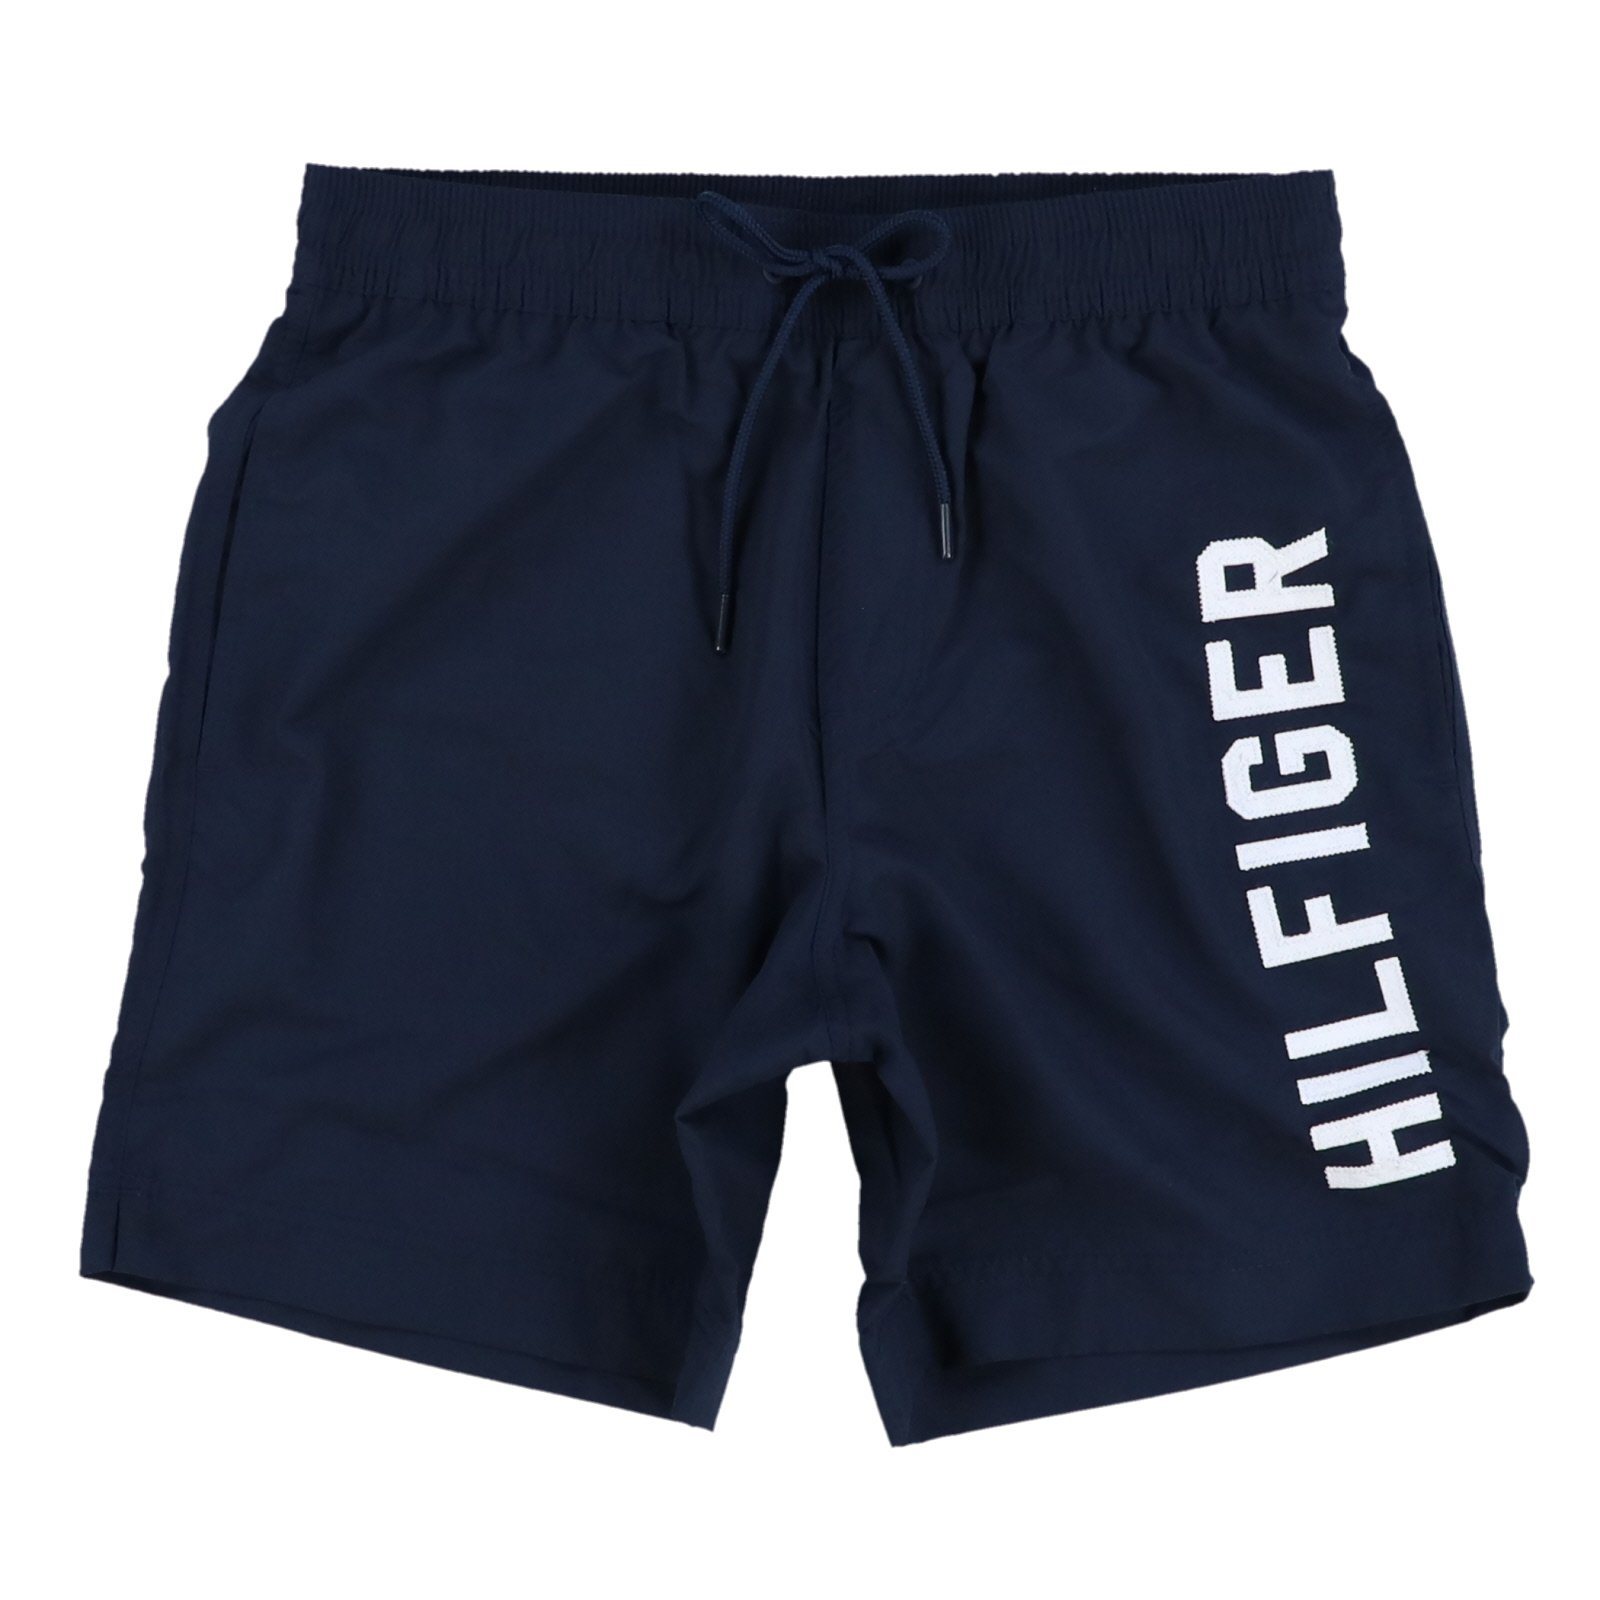 Tommy Hilfiger Mens Swim Trunks (Medium, Navy Blue)